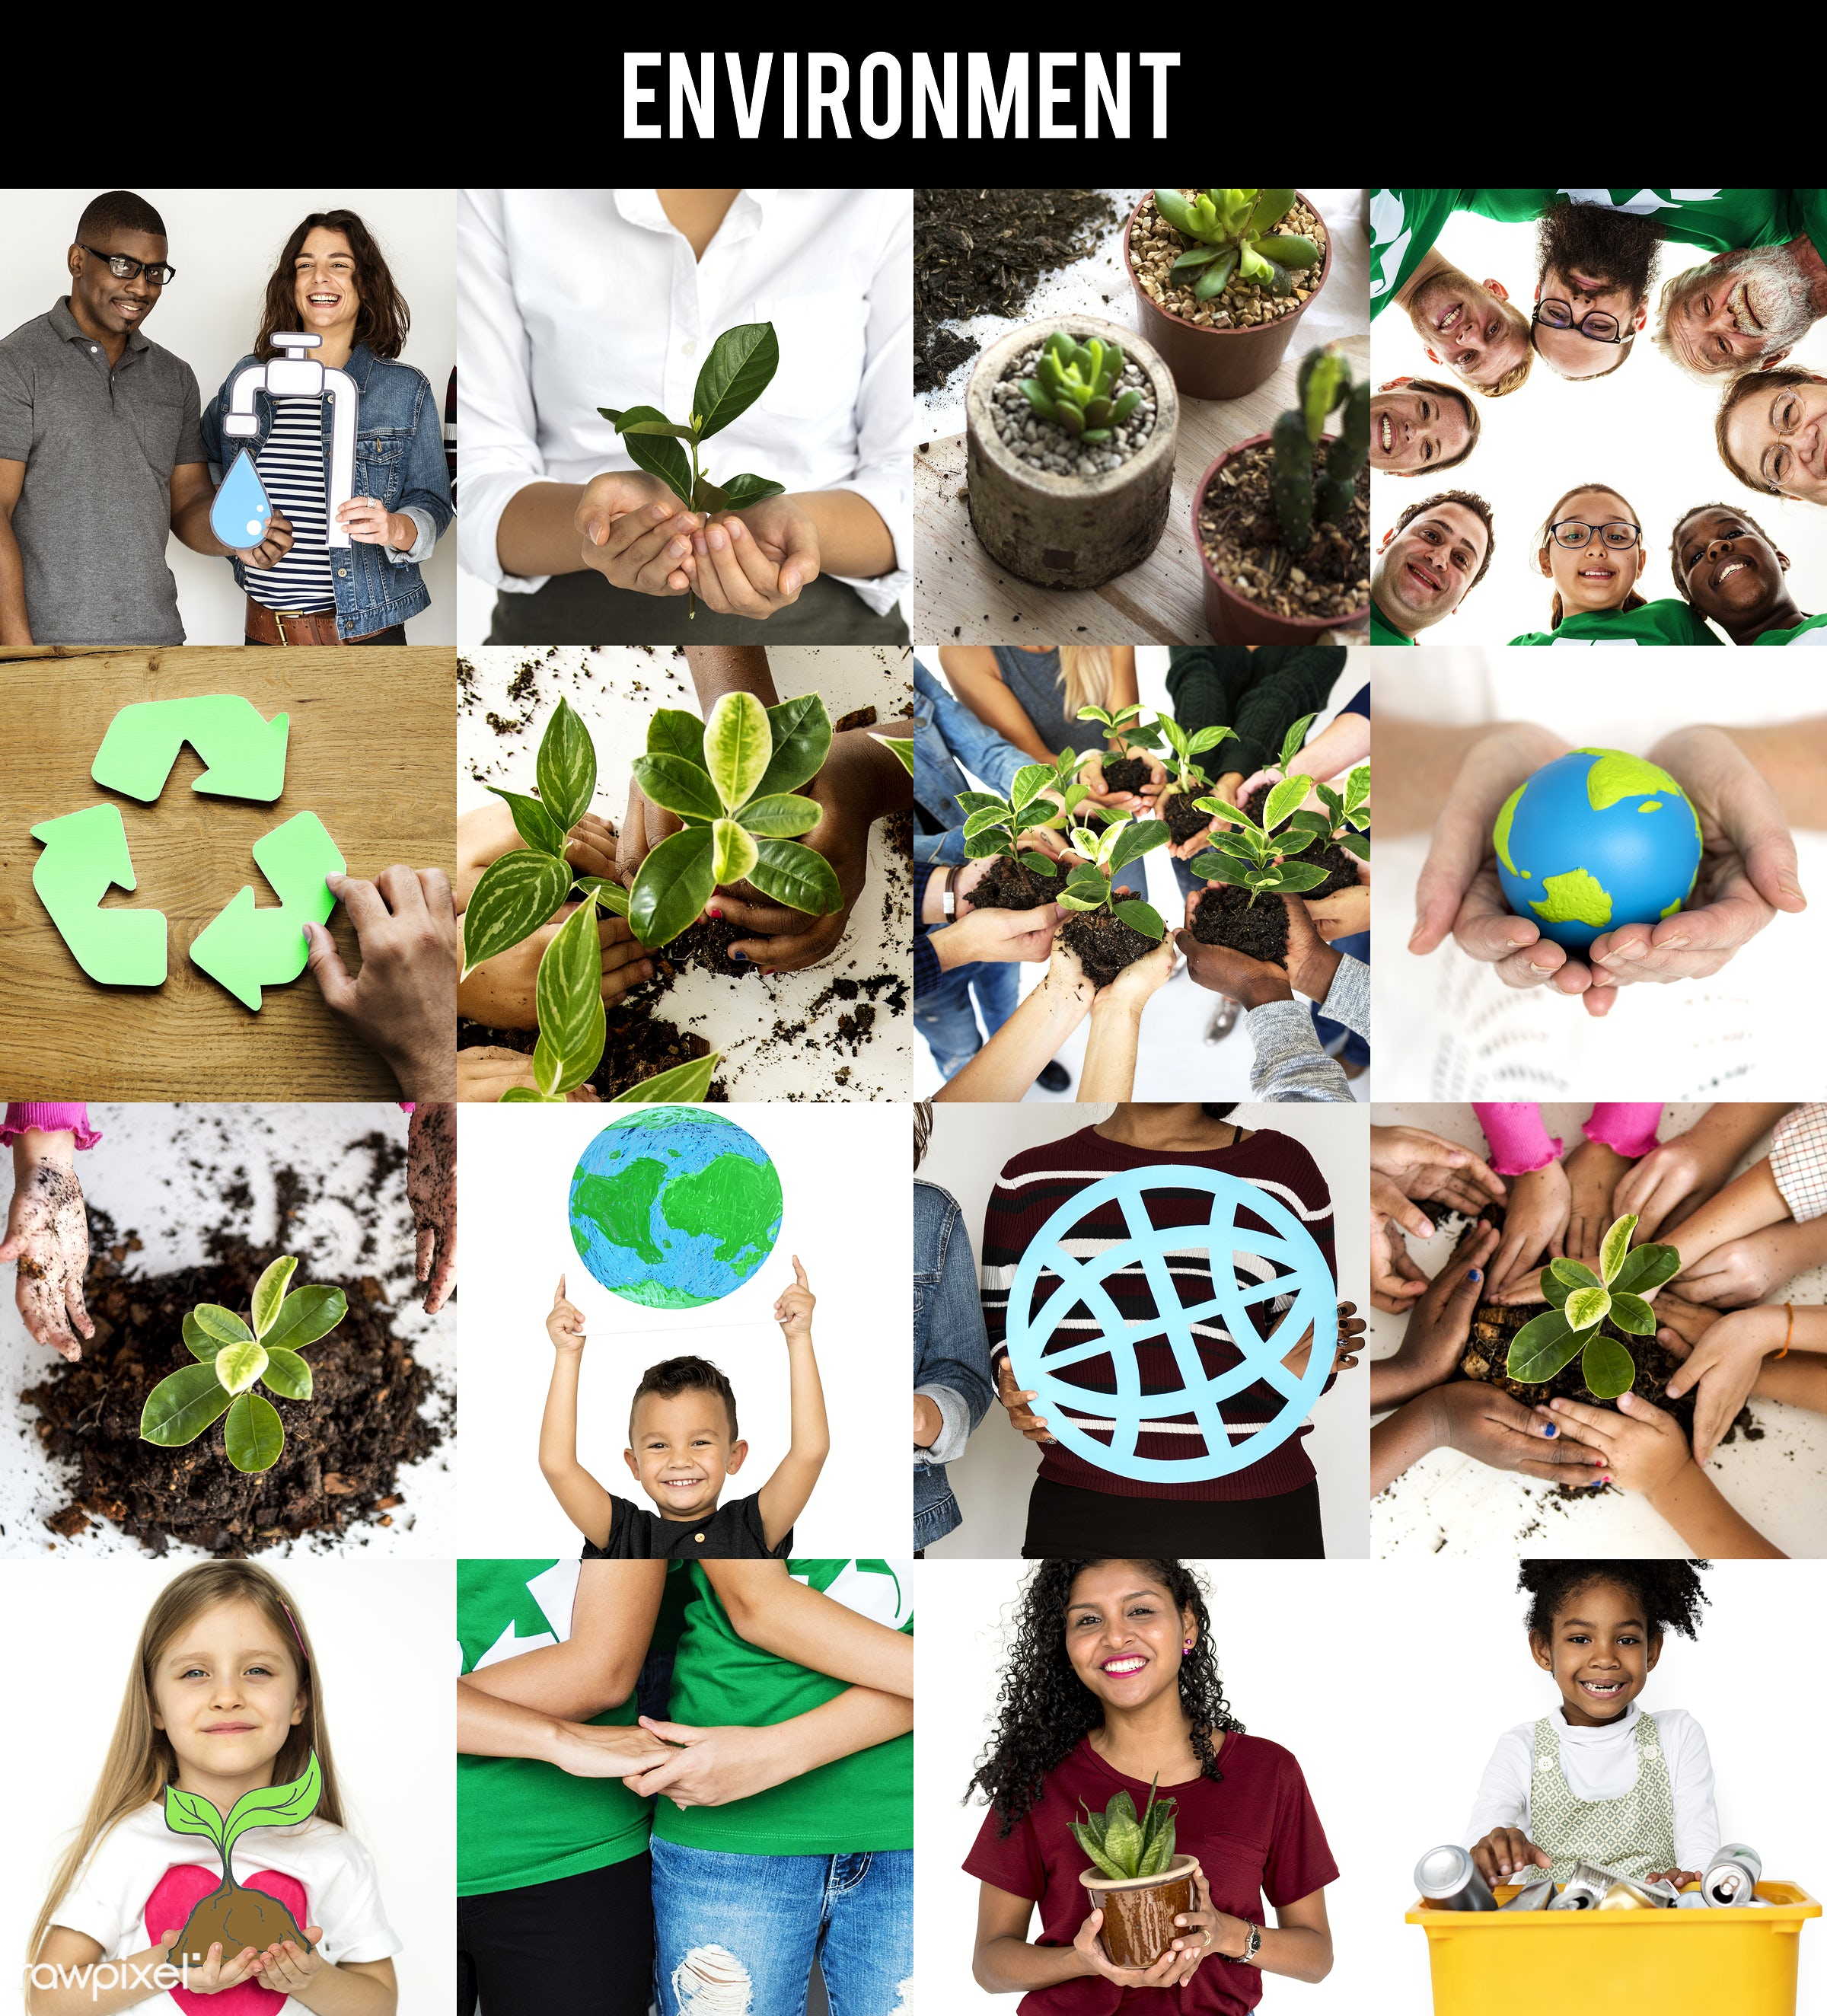 studio, person, save, diverse, sustainable, people, help, planet, young adult, nature, sustainability, go green, live,...